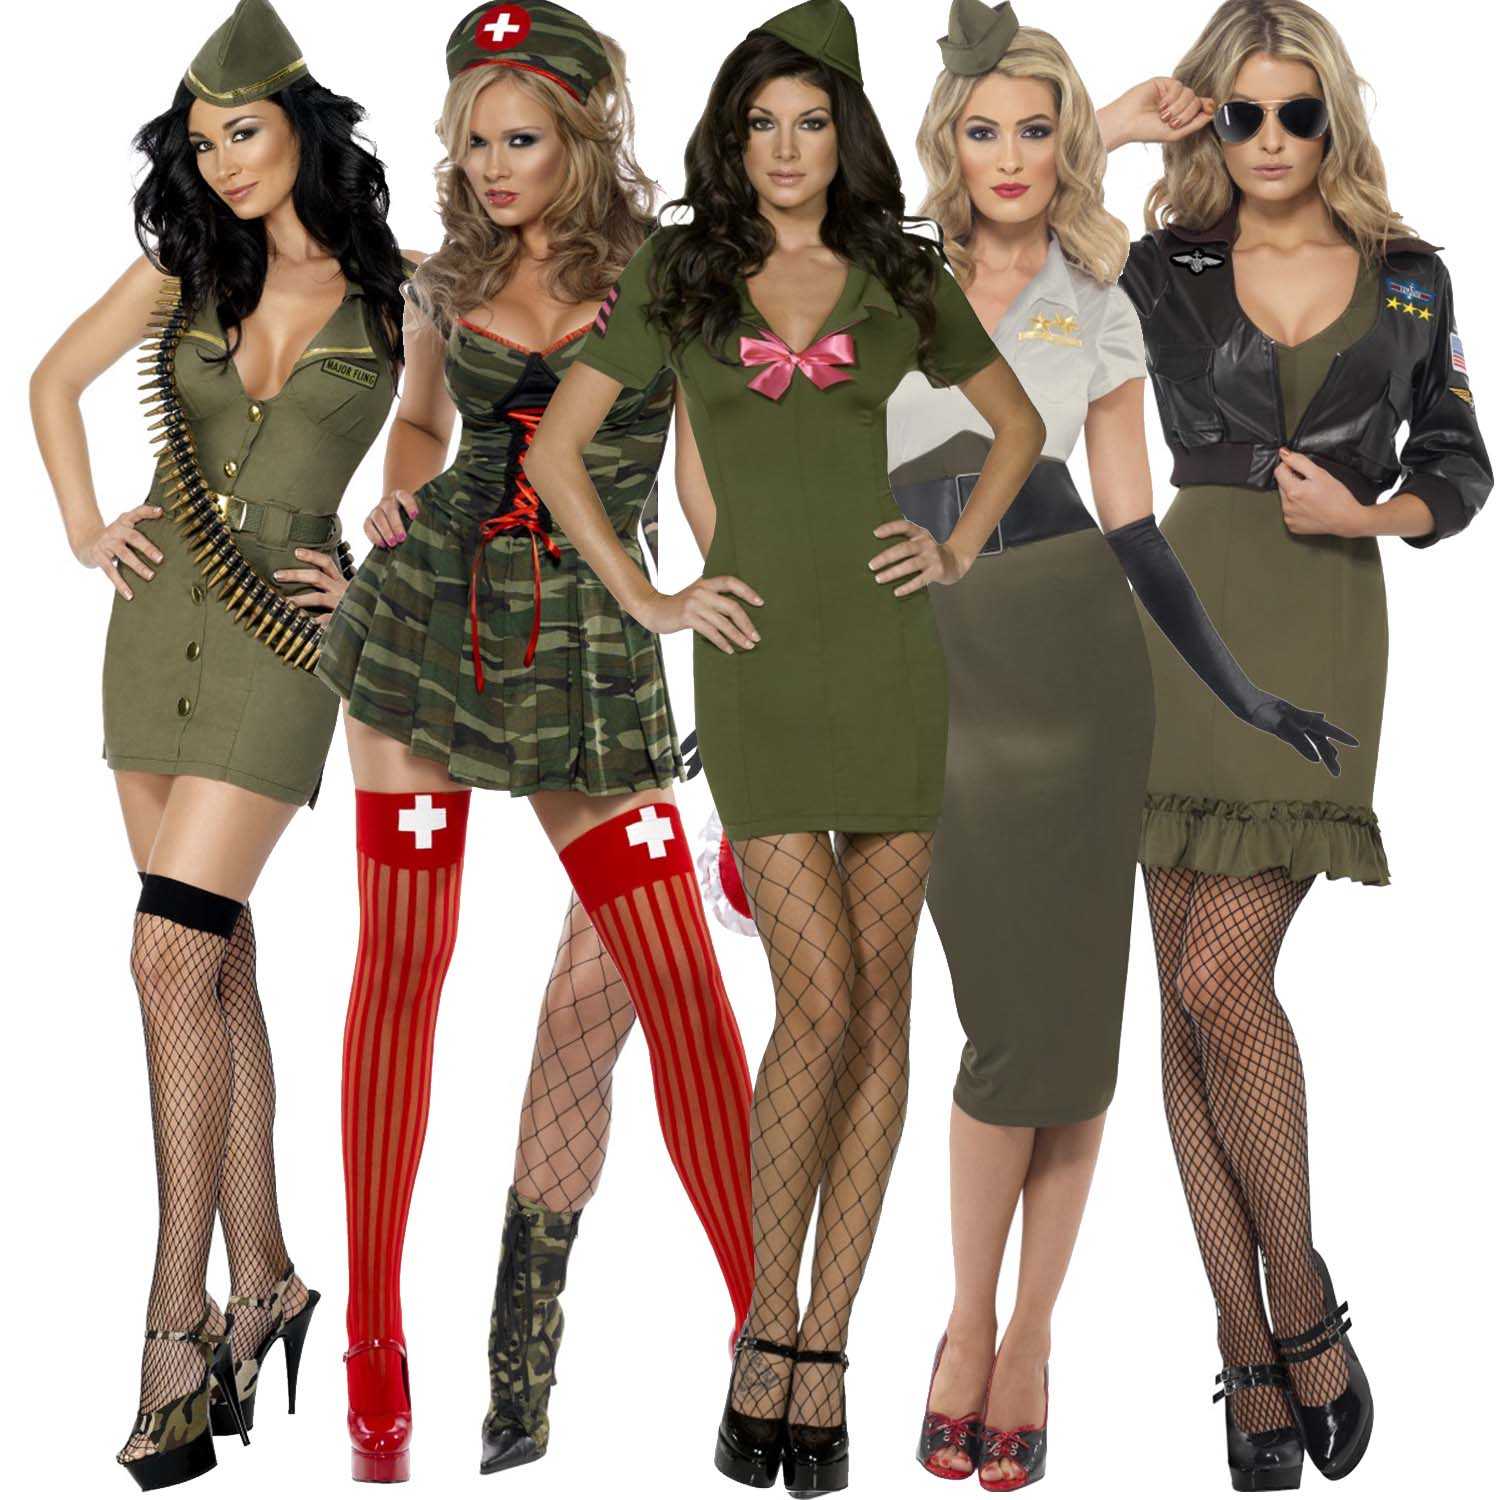 Clearance Womens Miliatary Army Solr Fancy Dress Party Costume Outfit Uk Plus Size Dresses Starlet Vintage